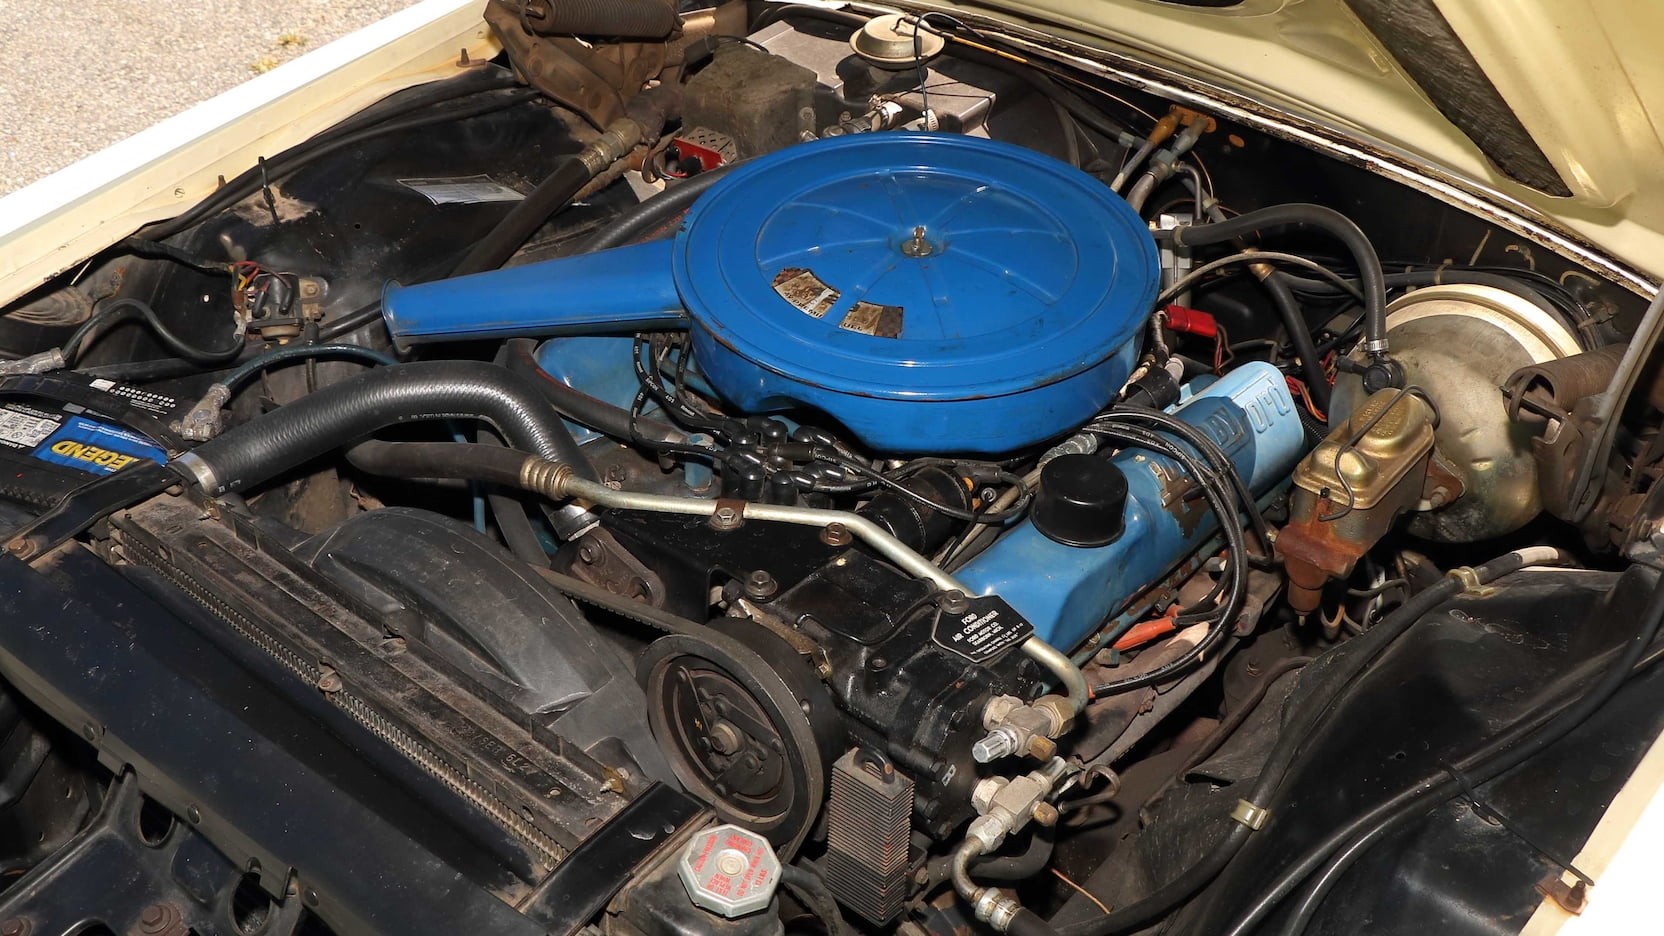 1967 Ford Thunderbird engine